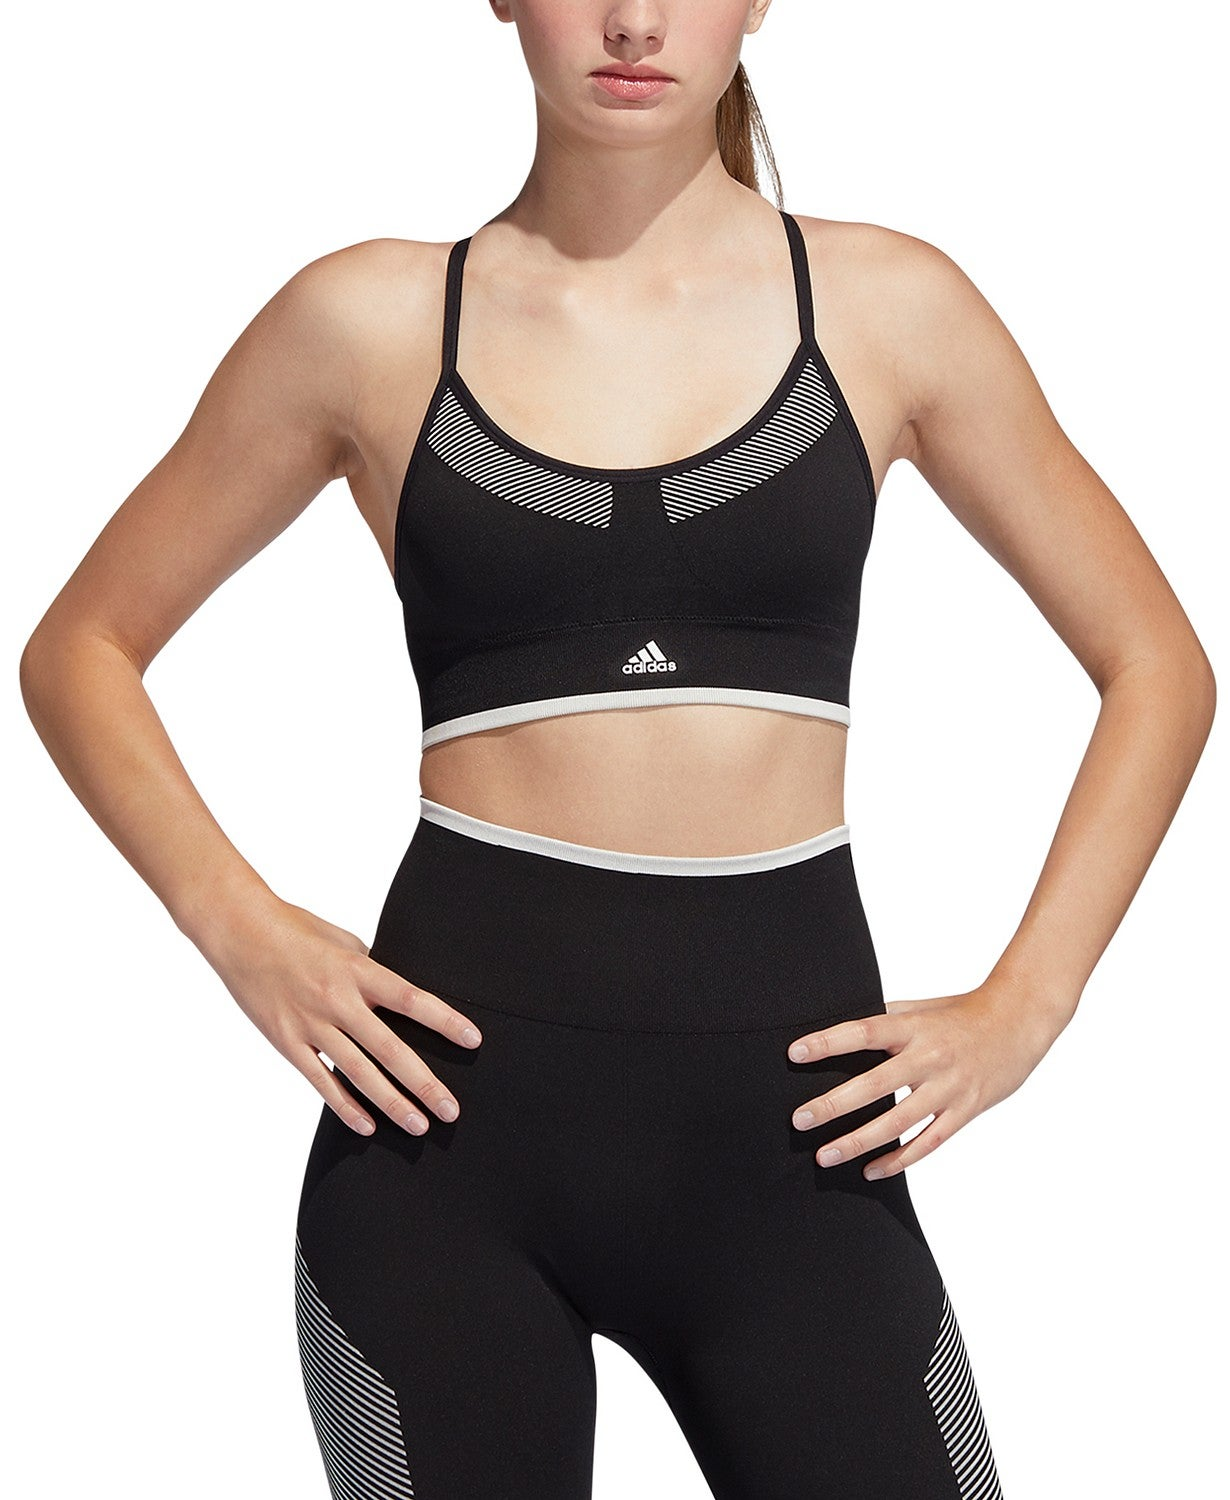 Adidas PrimeKnit Sporta Bra and Leggings Set